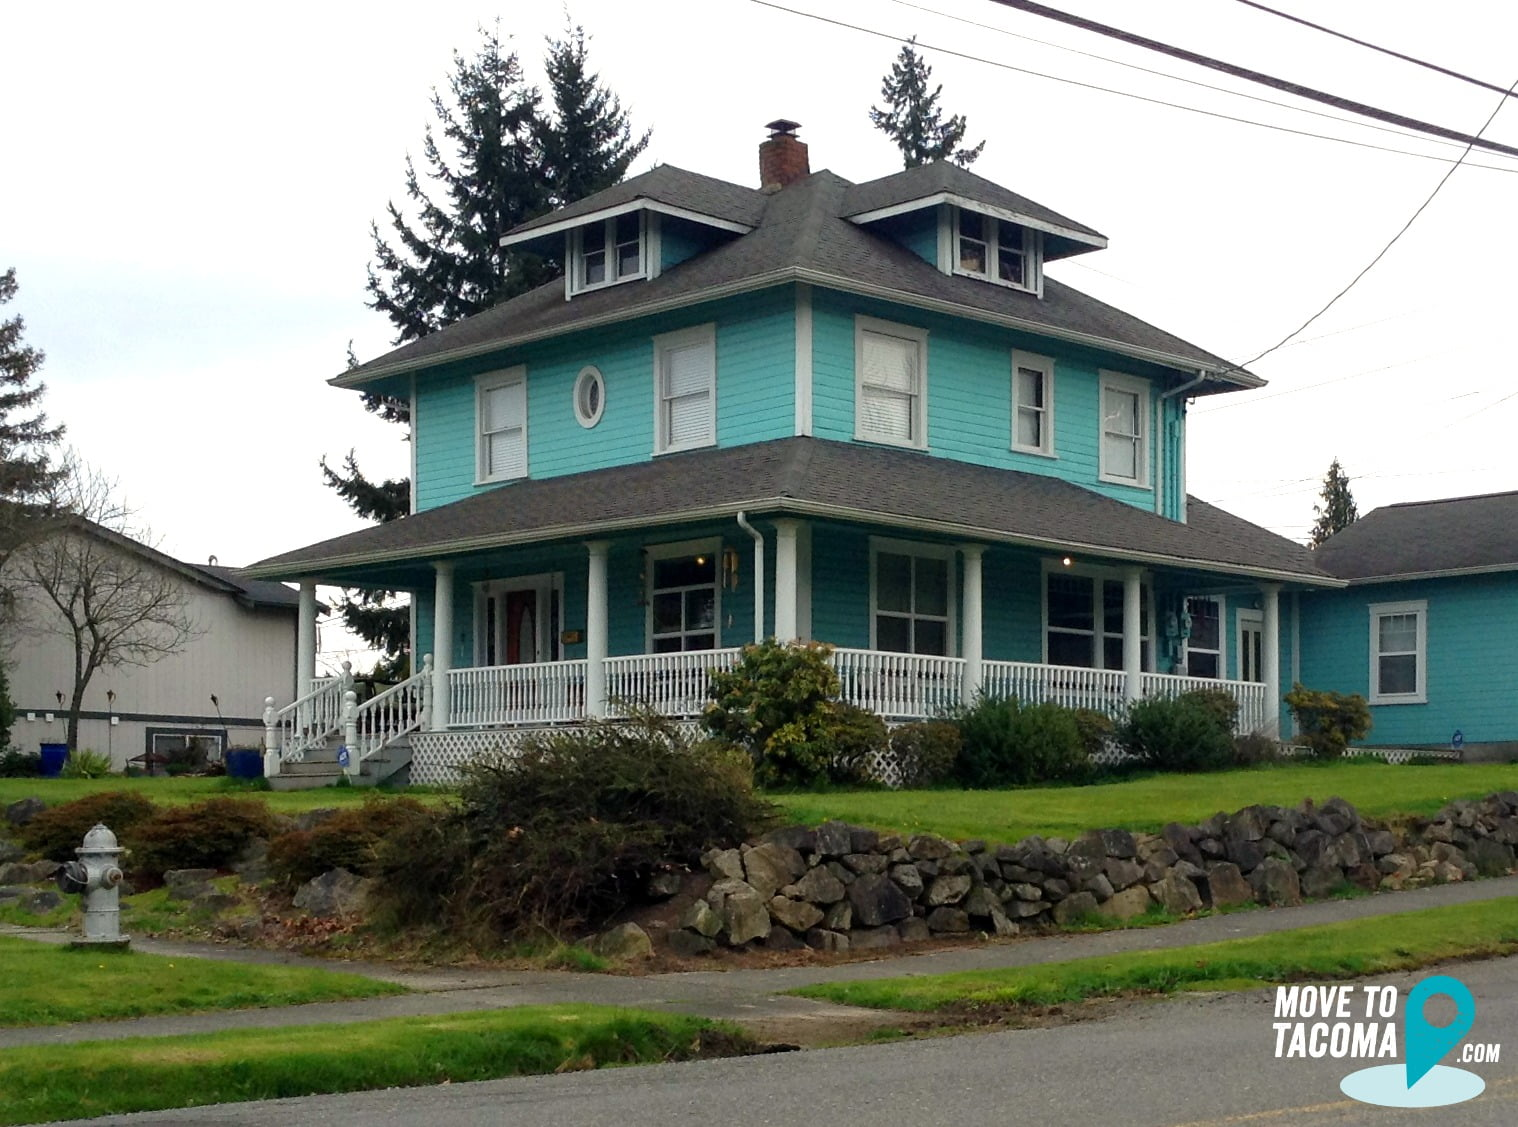 Teal house with wraparound porch in Tacoma's eastside neighborhood